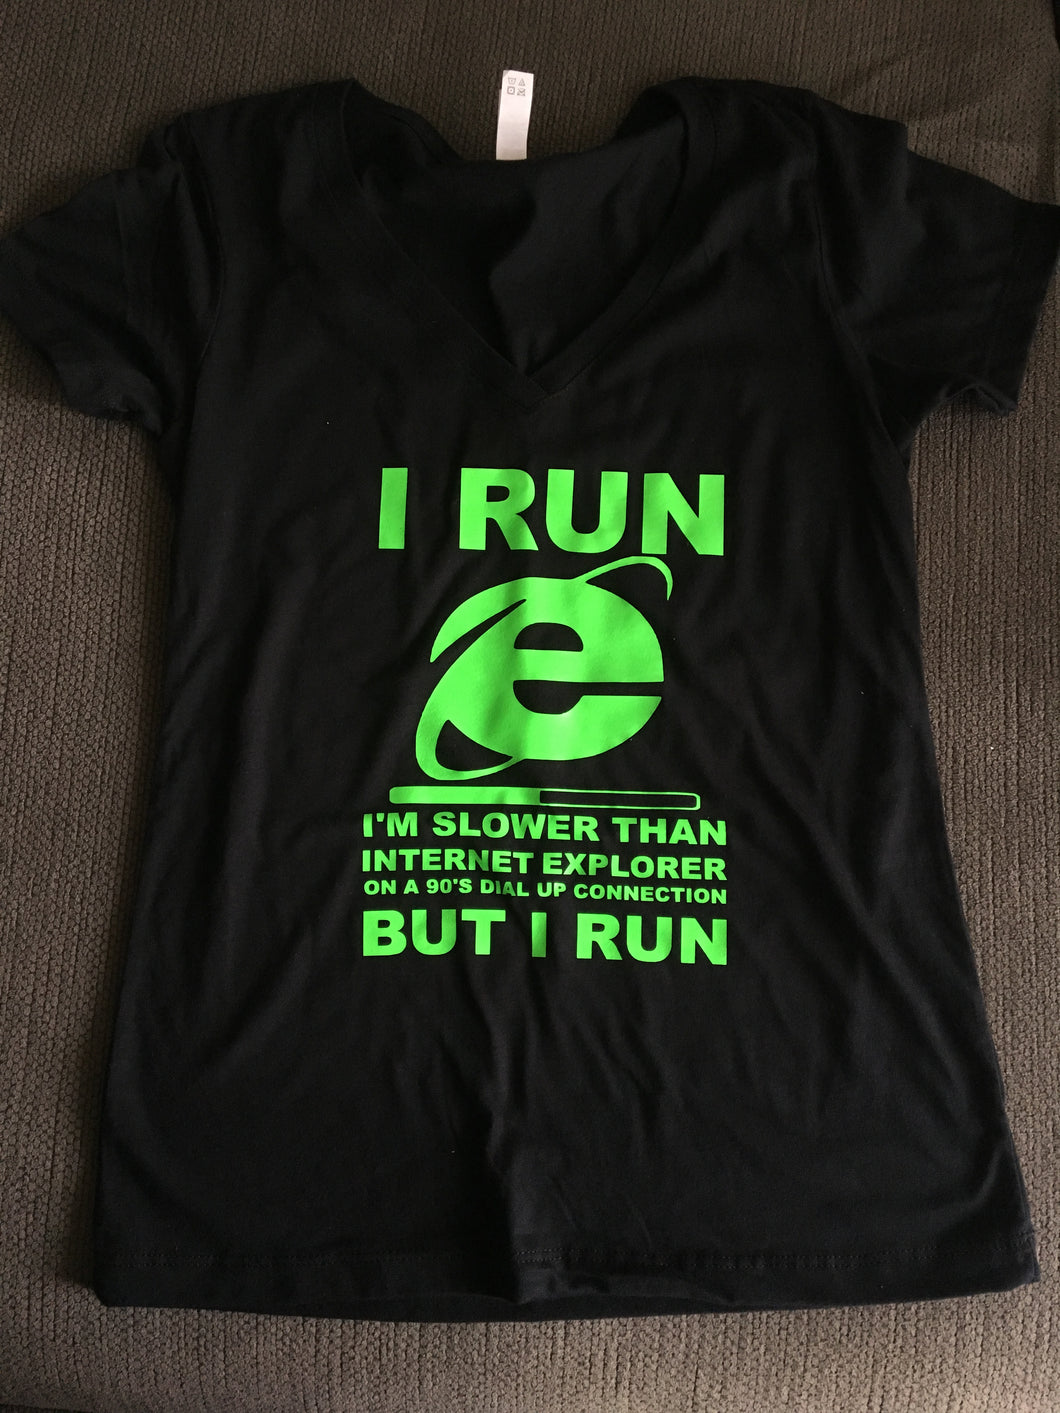 Women's Funny Shirt, I RUN slow but I RUN, Internet, 90's, Exercise Workout Gym